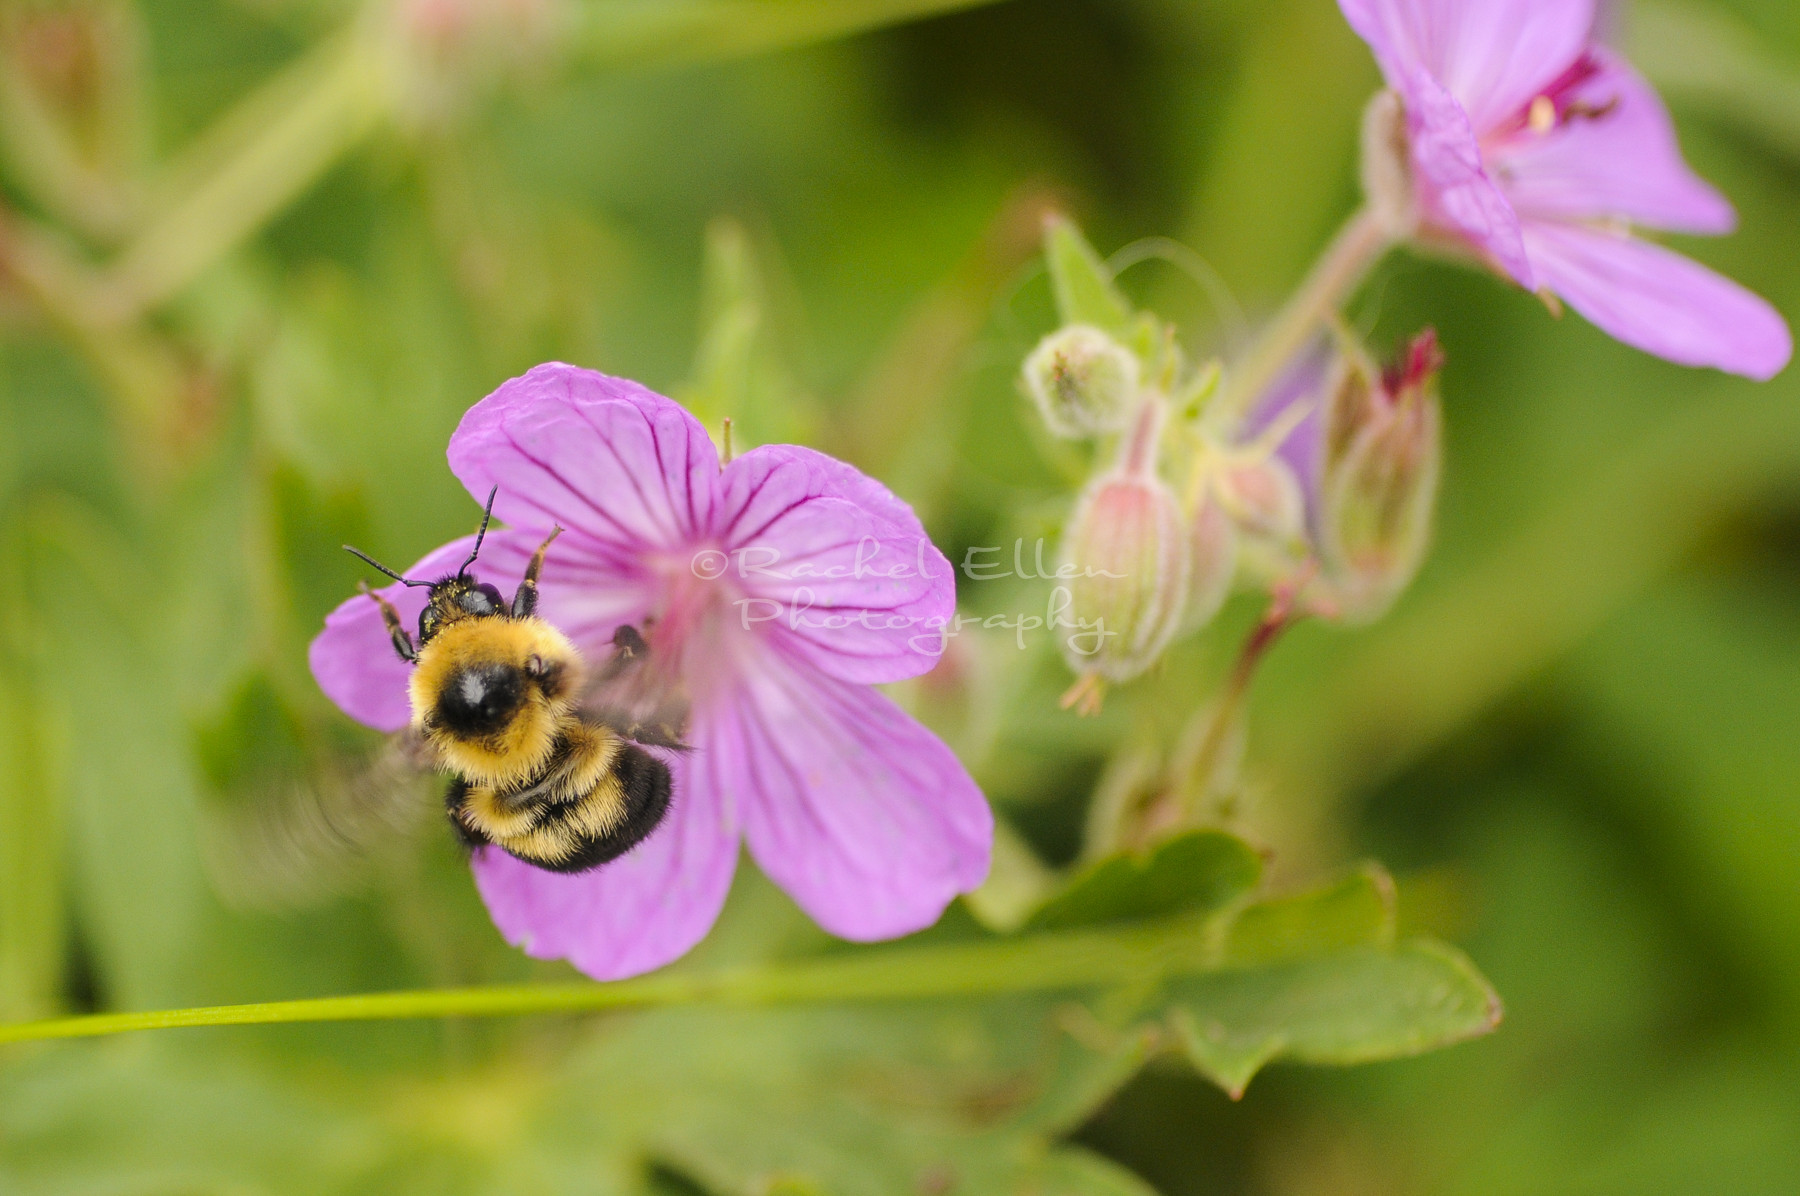 Wild Bumblebee on Northern Crane's-Bill